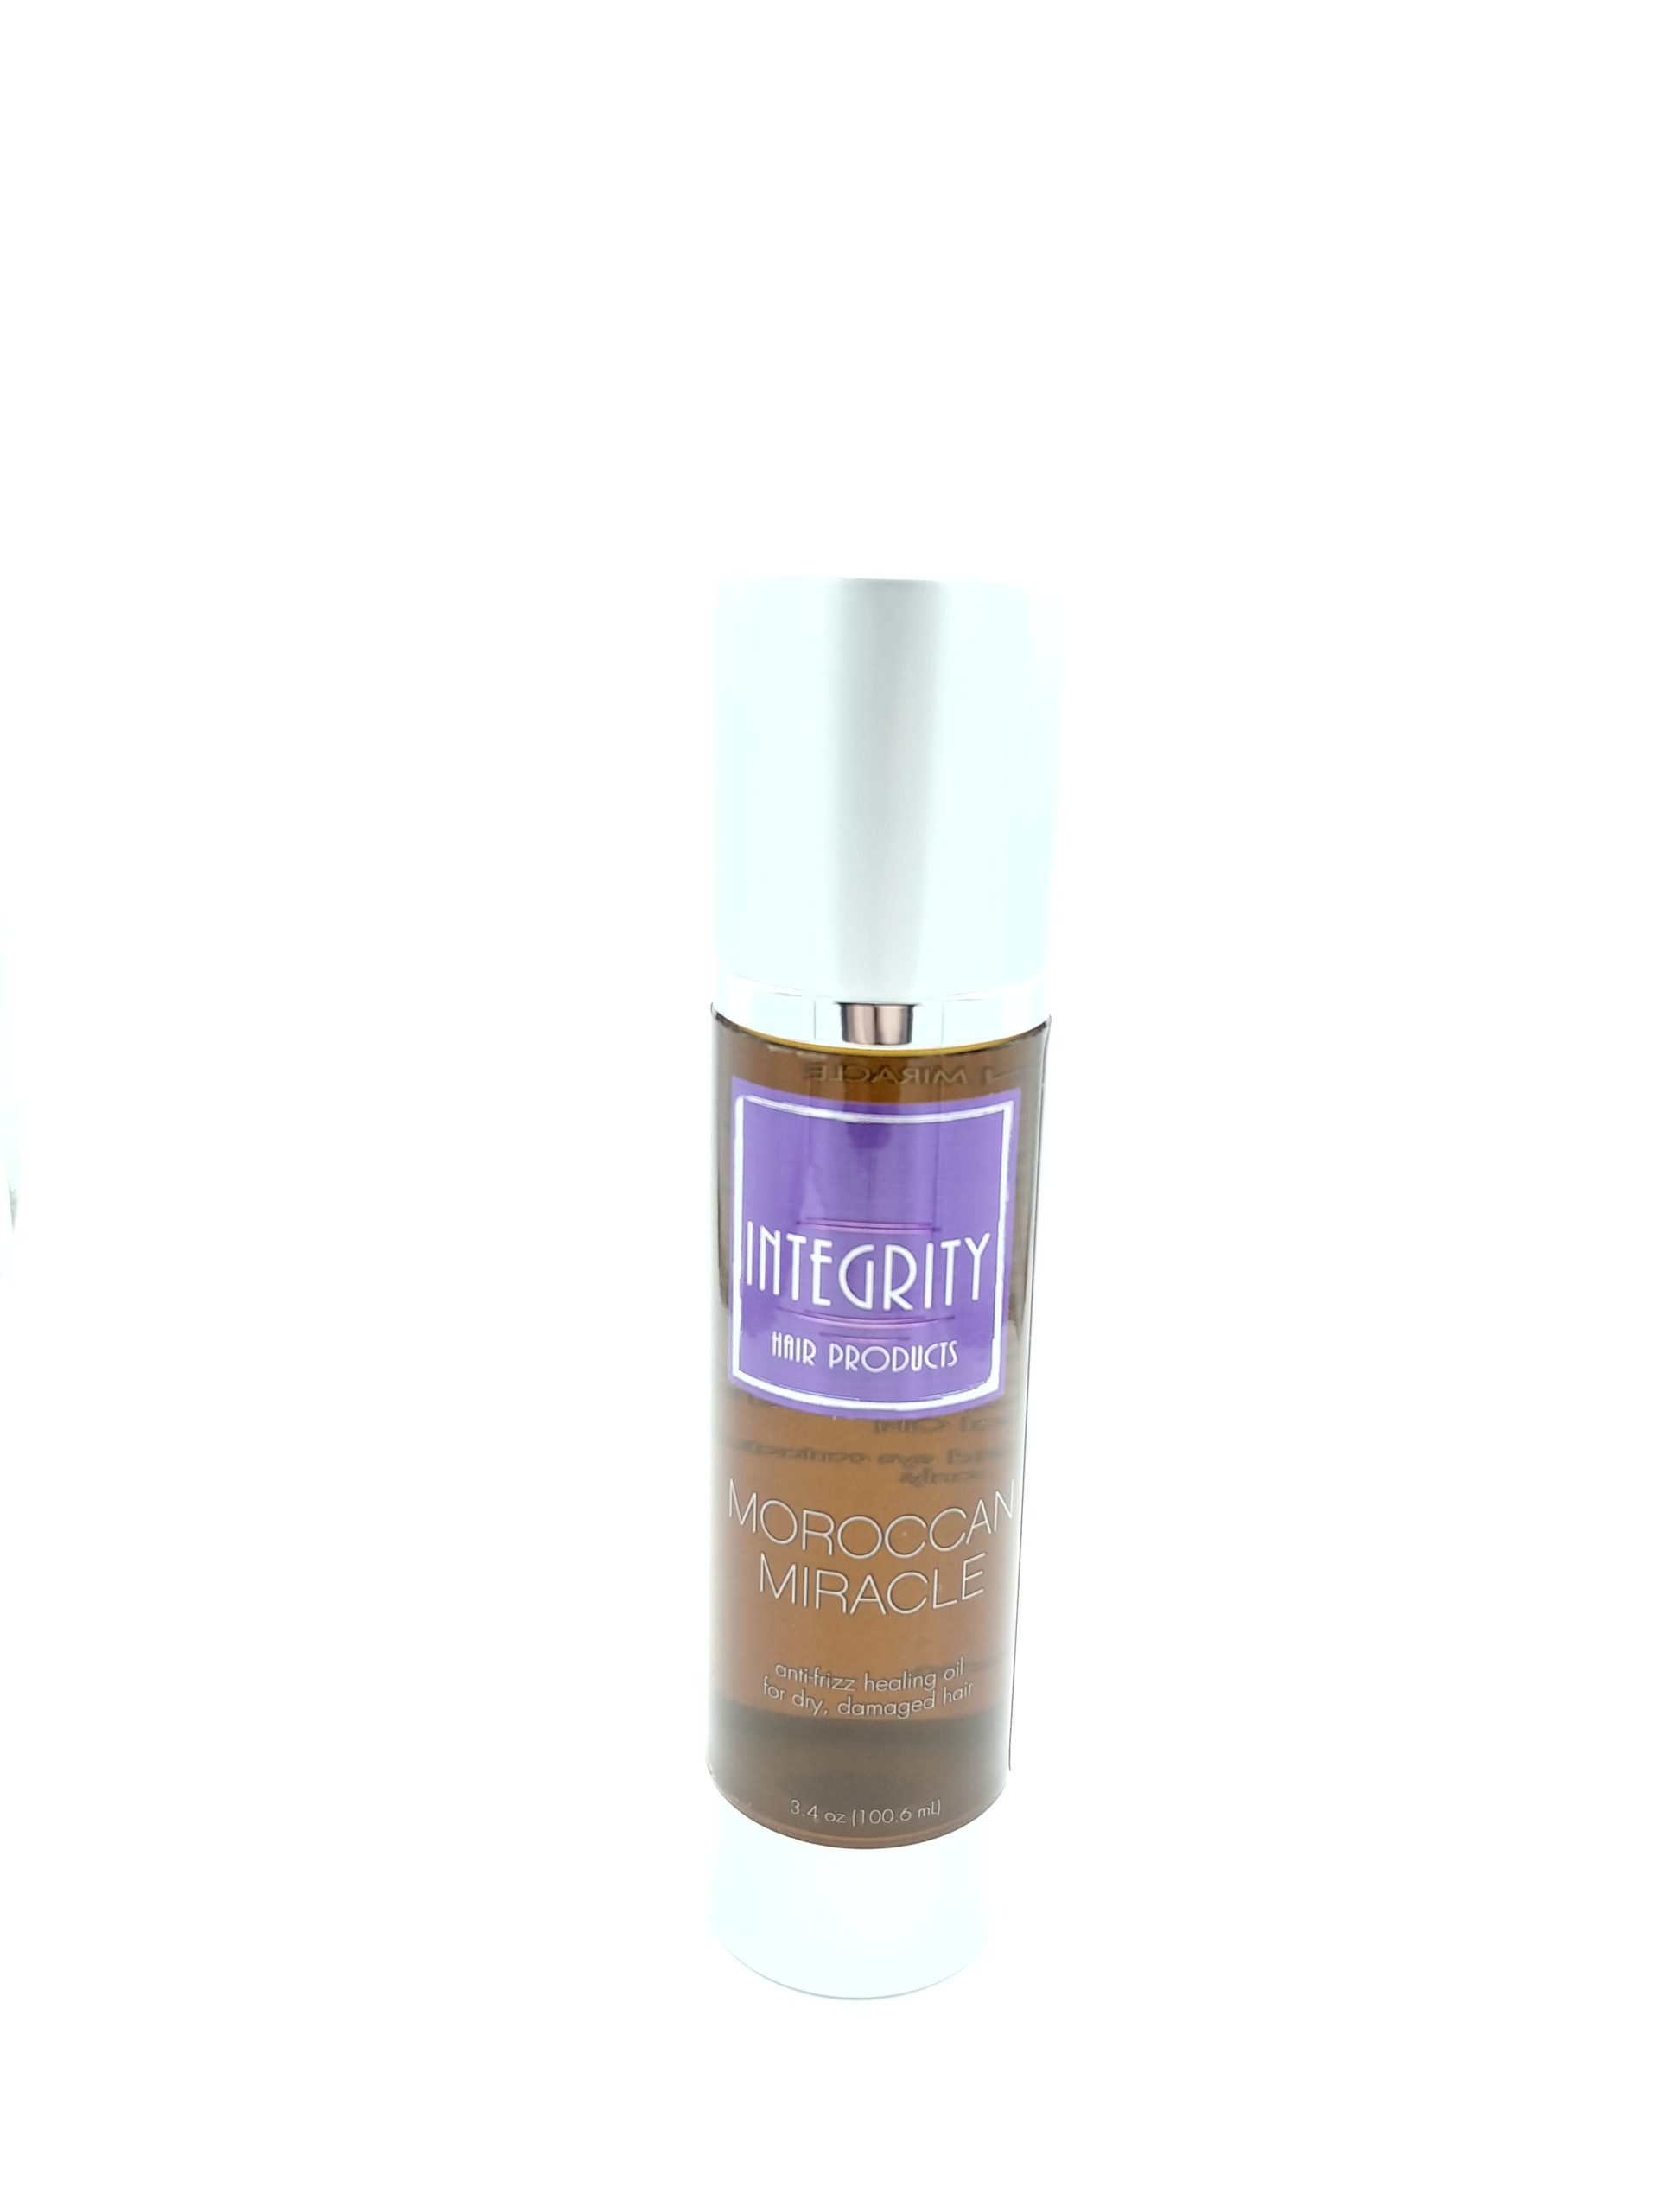 Integrity Moroccan Miracle Styling 3.4 oz